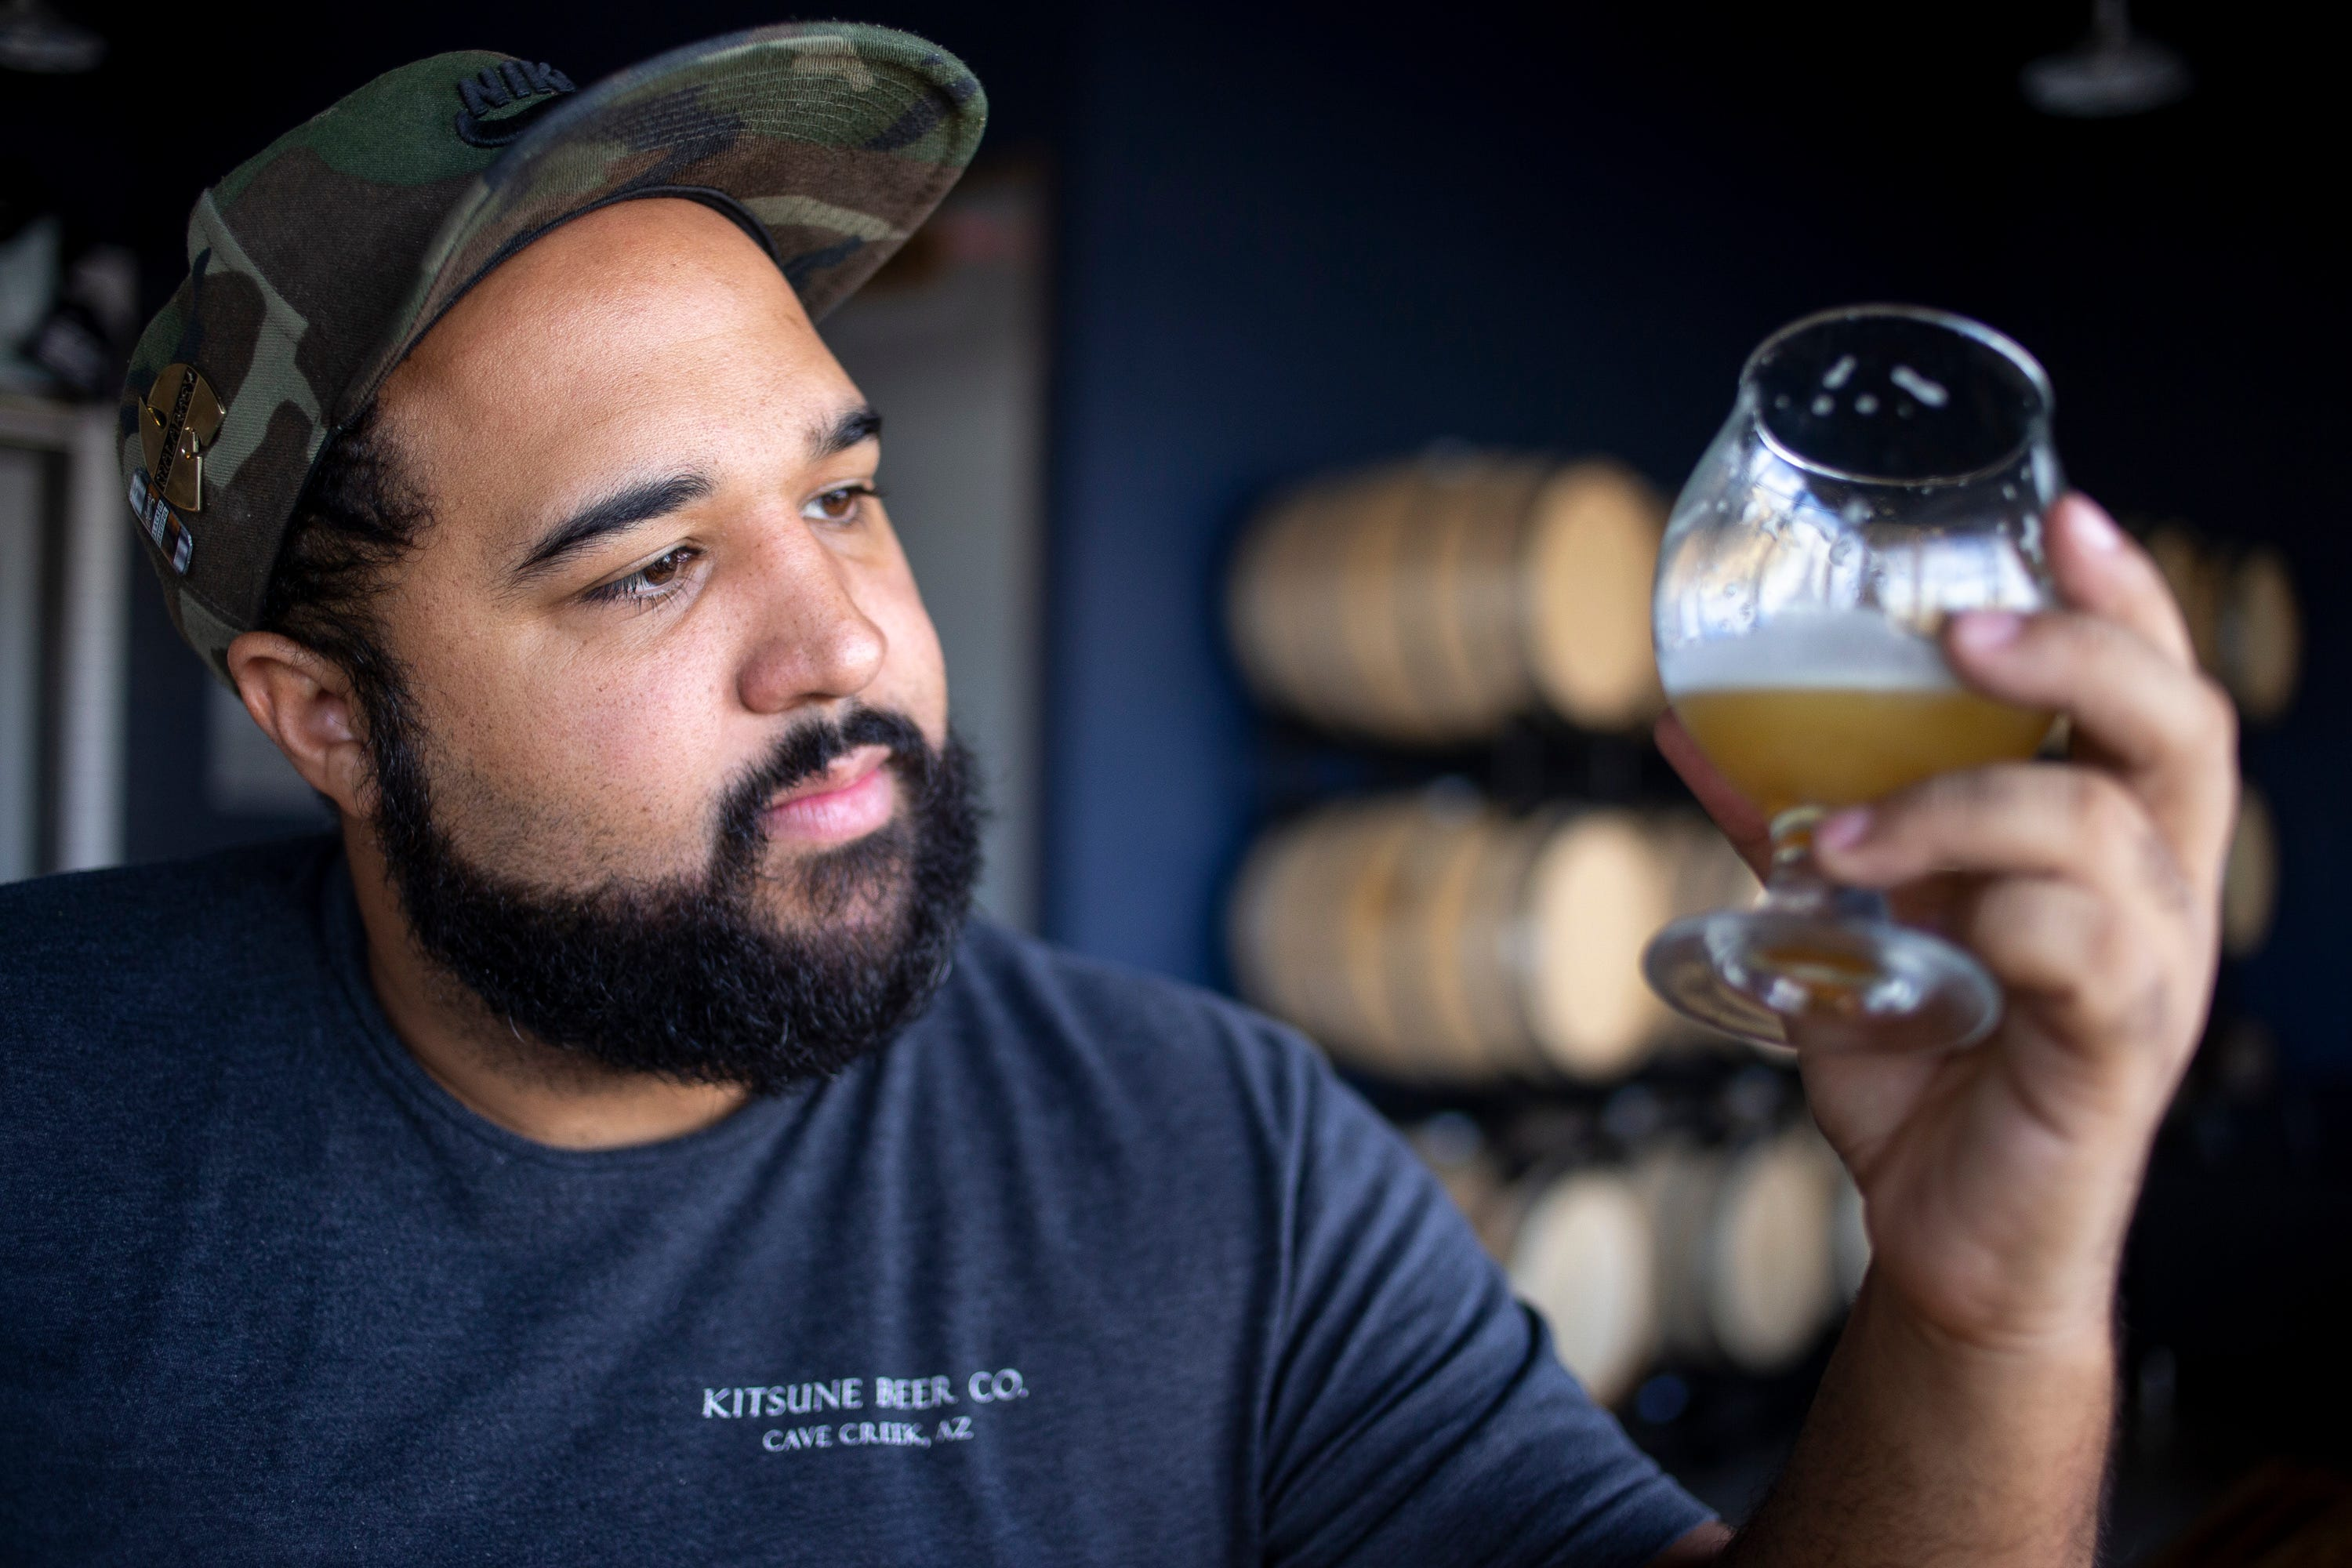 Arizona's first Black-owned brewery launches this week. Say hello to Kitsune Brewing